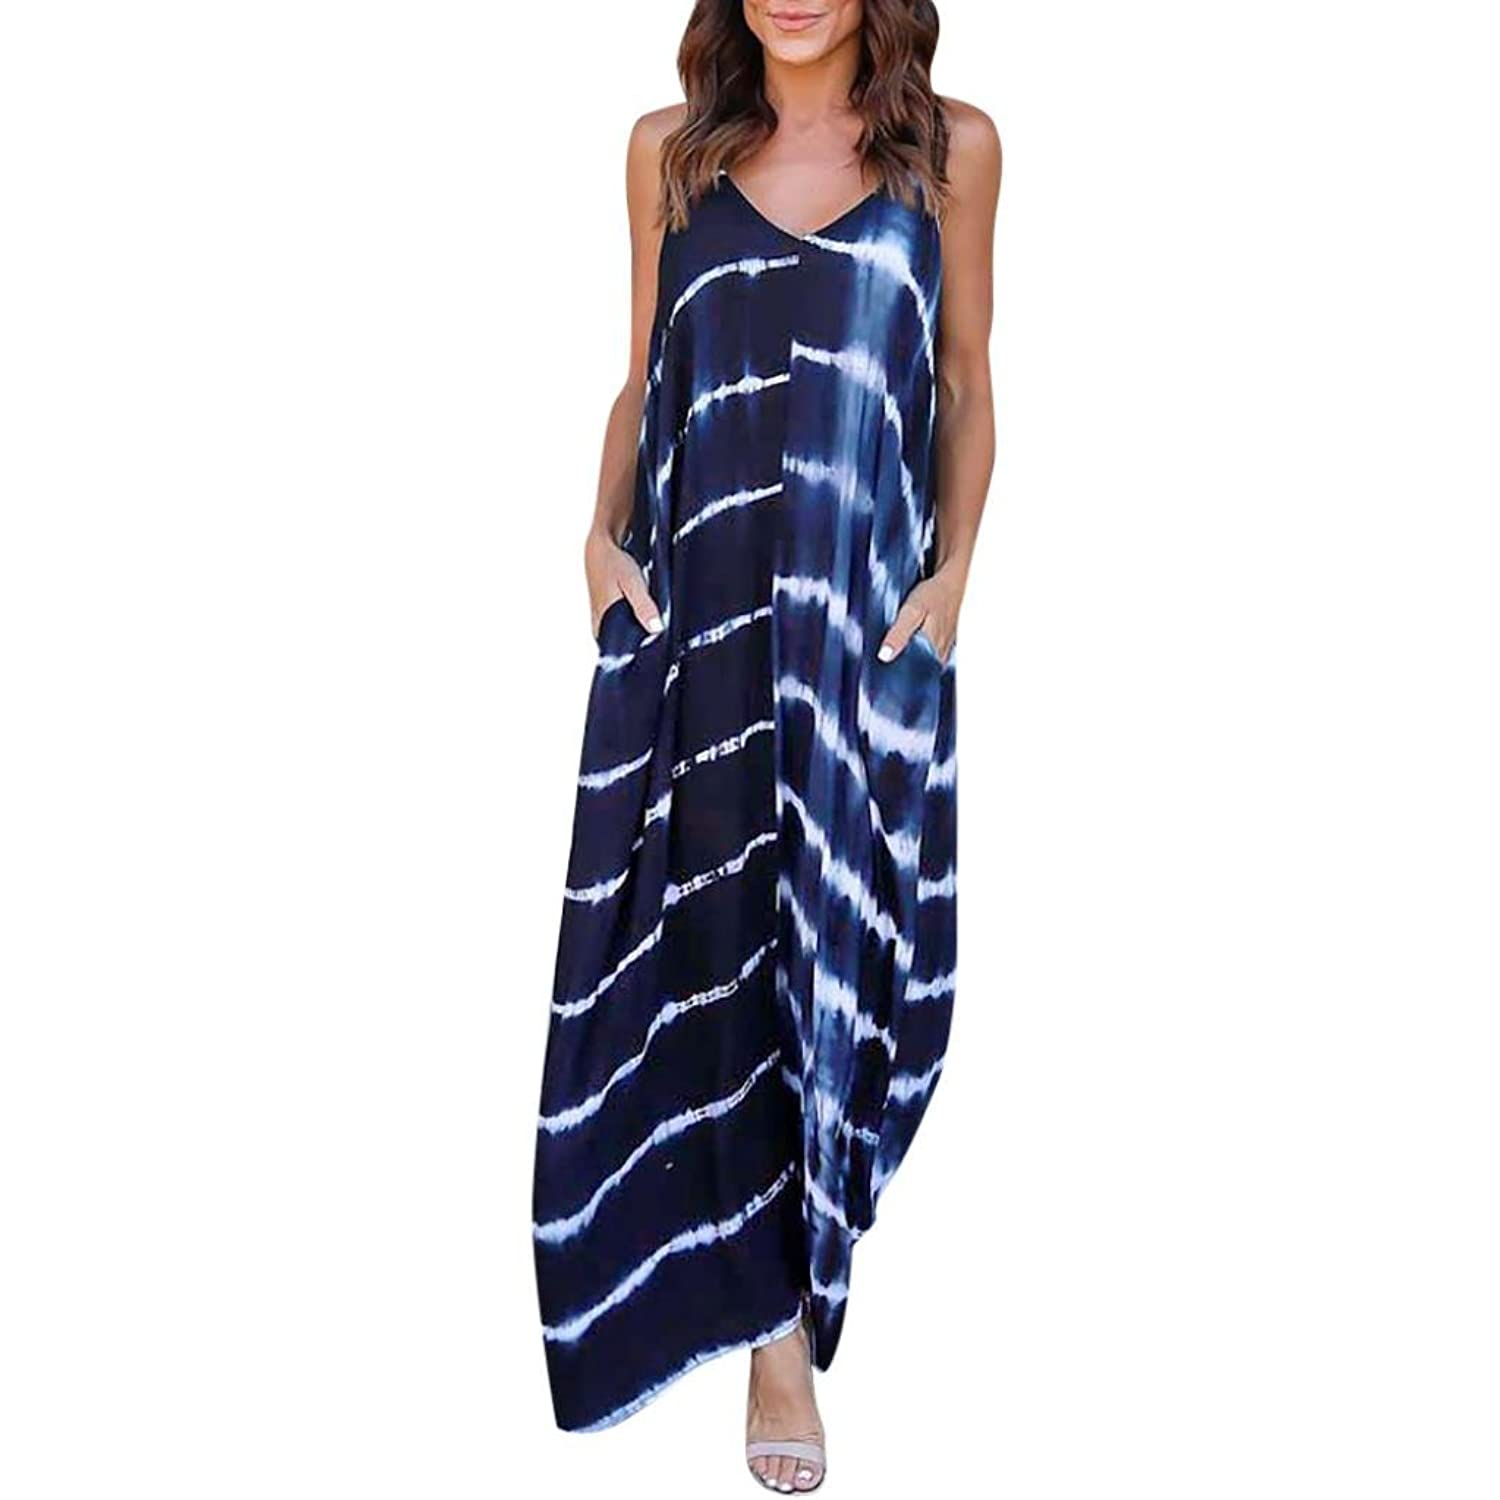 acf199f4b9 Women Floral Print Off Shoulder Maxi Dresses Womens Solid Plain Round Neck  Short Sleeve Long Tunic Maxi Dress With Pocket Women s Faux Wrap A Line  Dress ...